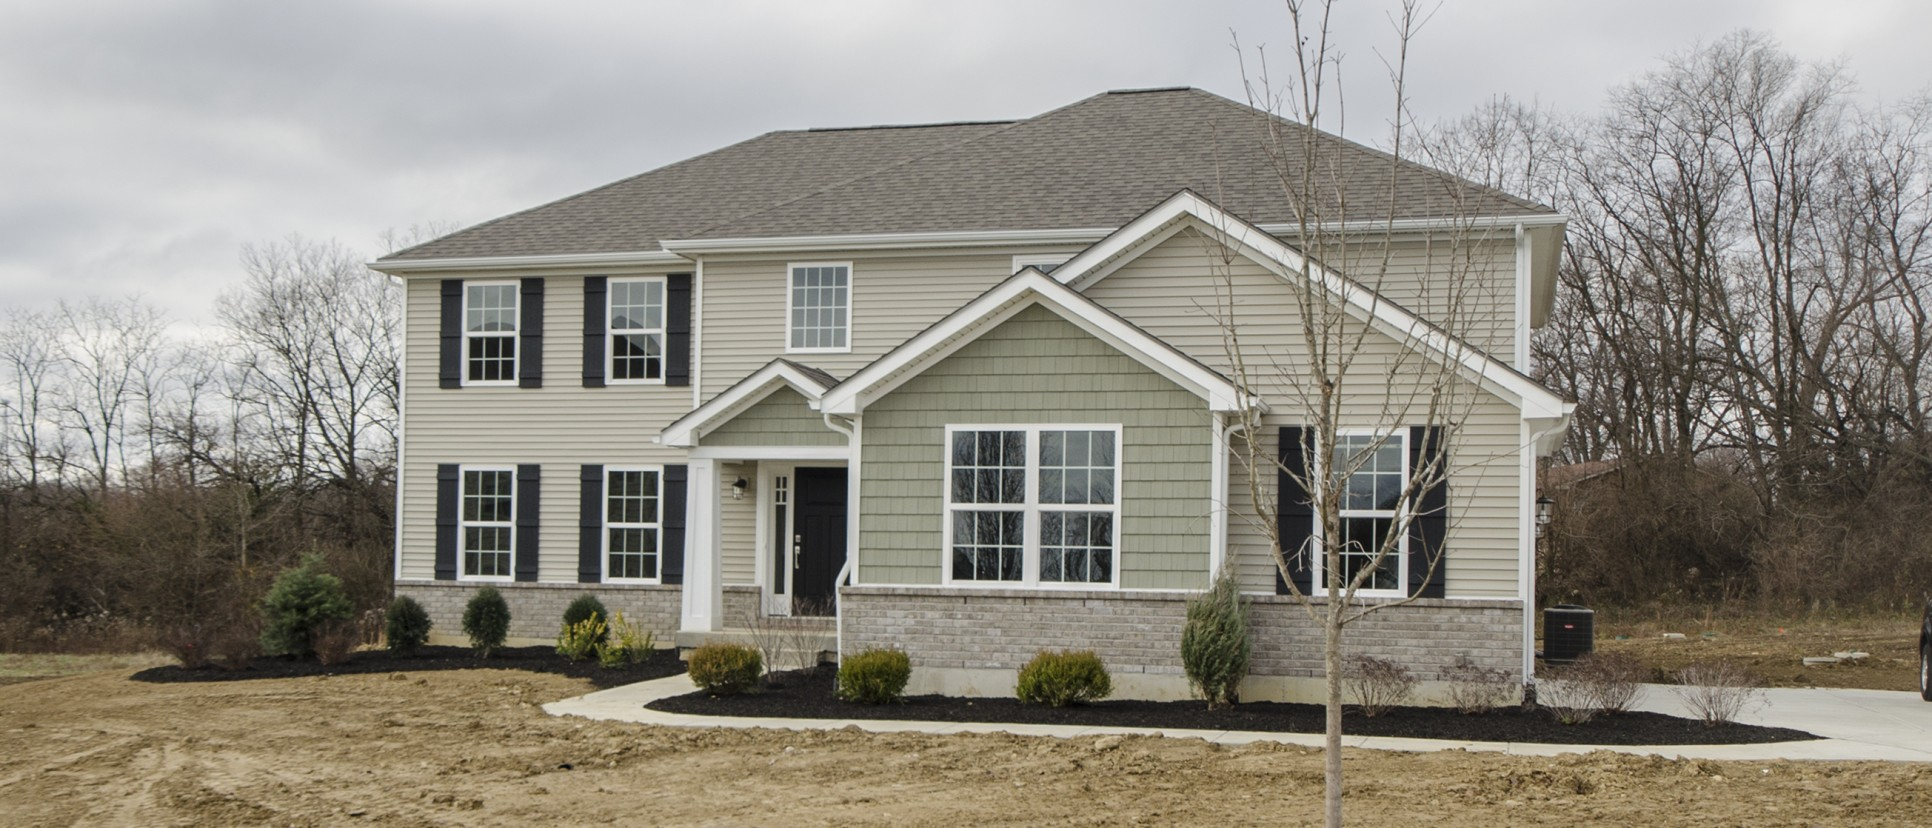 A custom exterior of The Marlena by Design Homes.